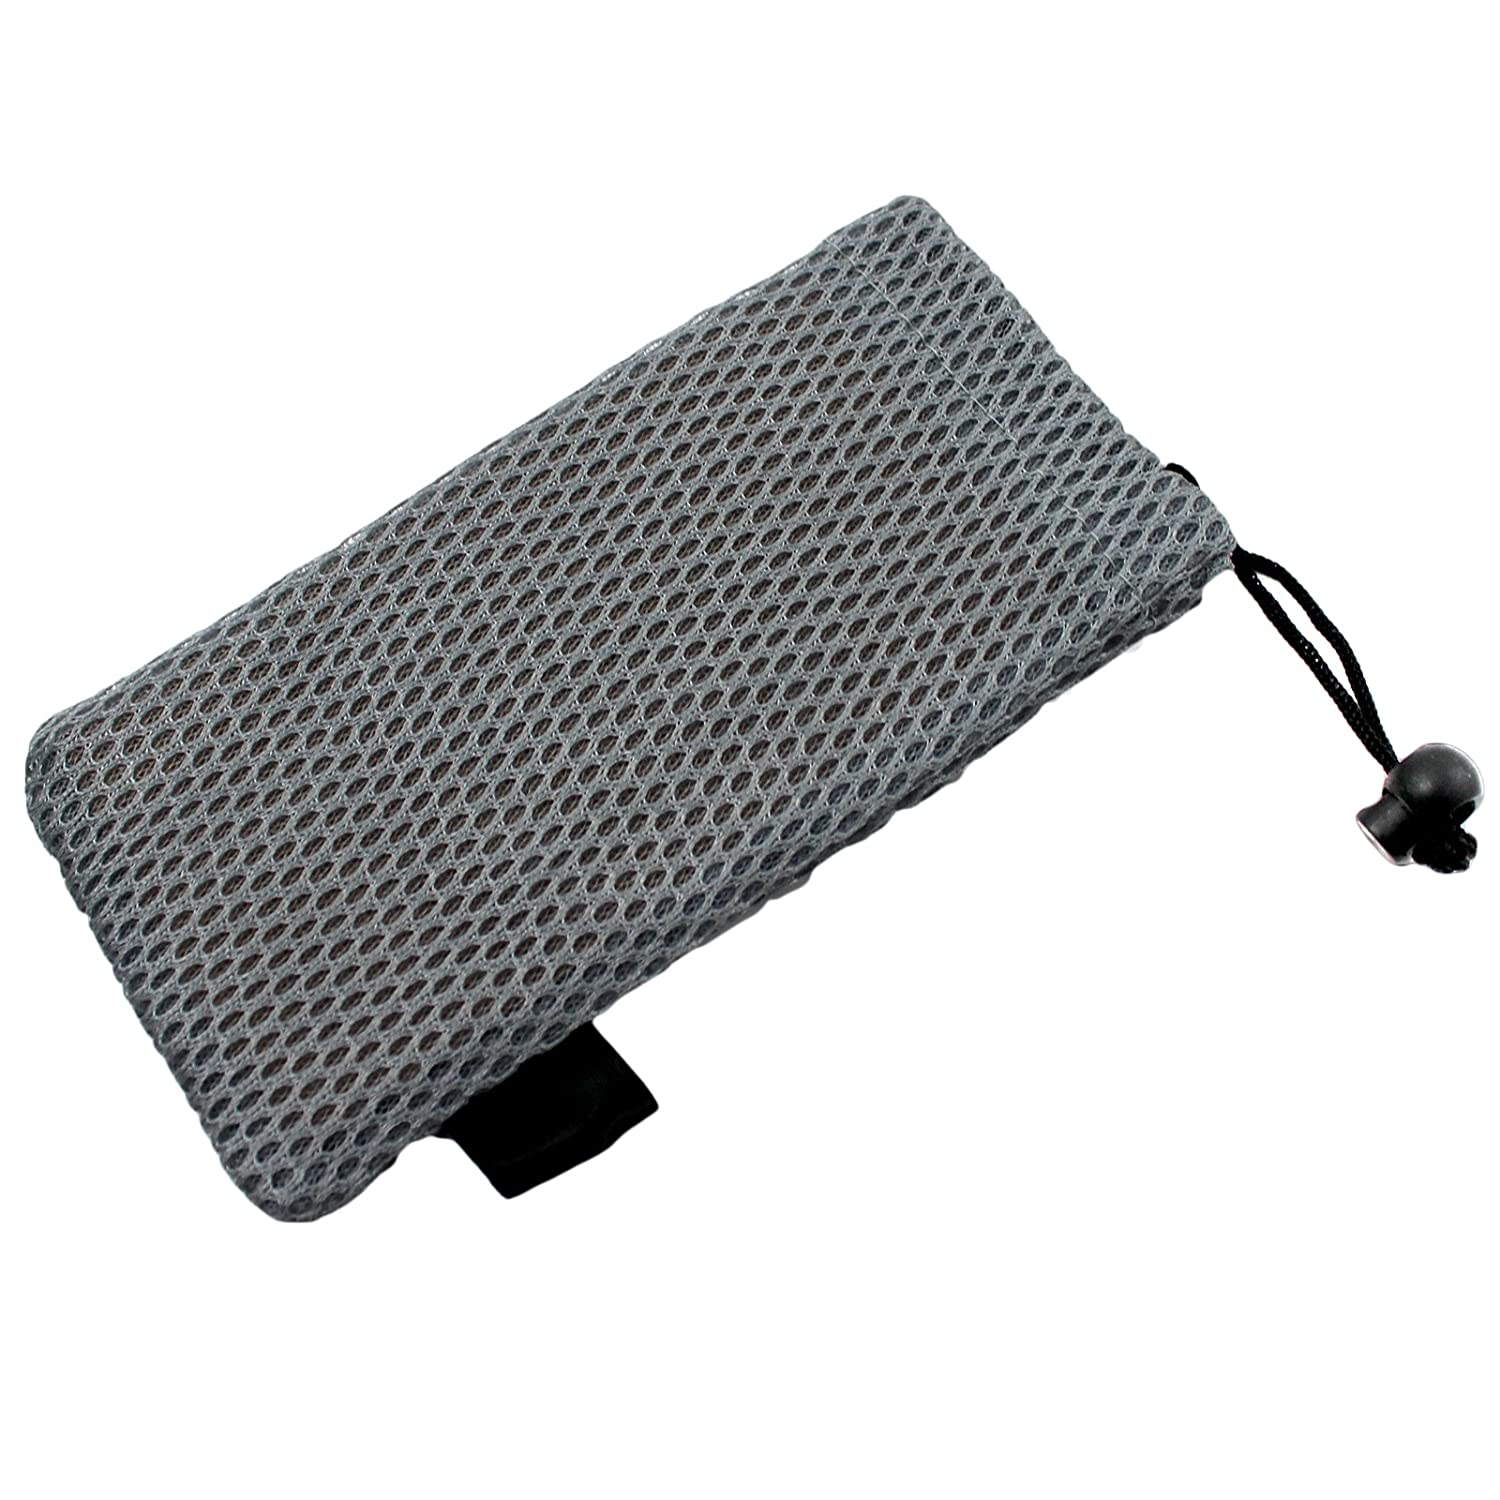 b4ea1ca3c7fd A soft padded mesh drawstring glasses case for spectacles   sunglasses  (Grey)  Amazon.co.uk  Clothing